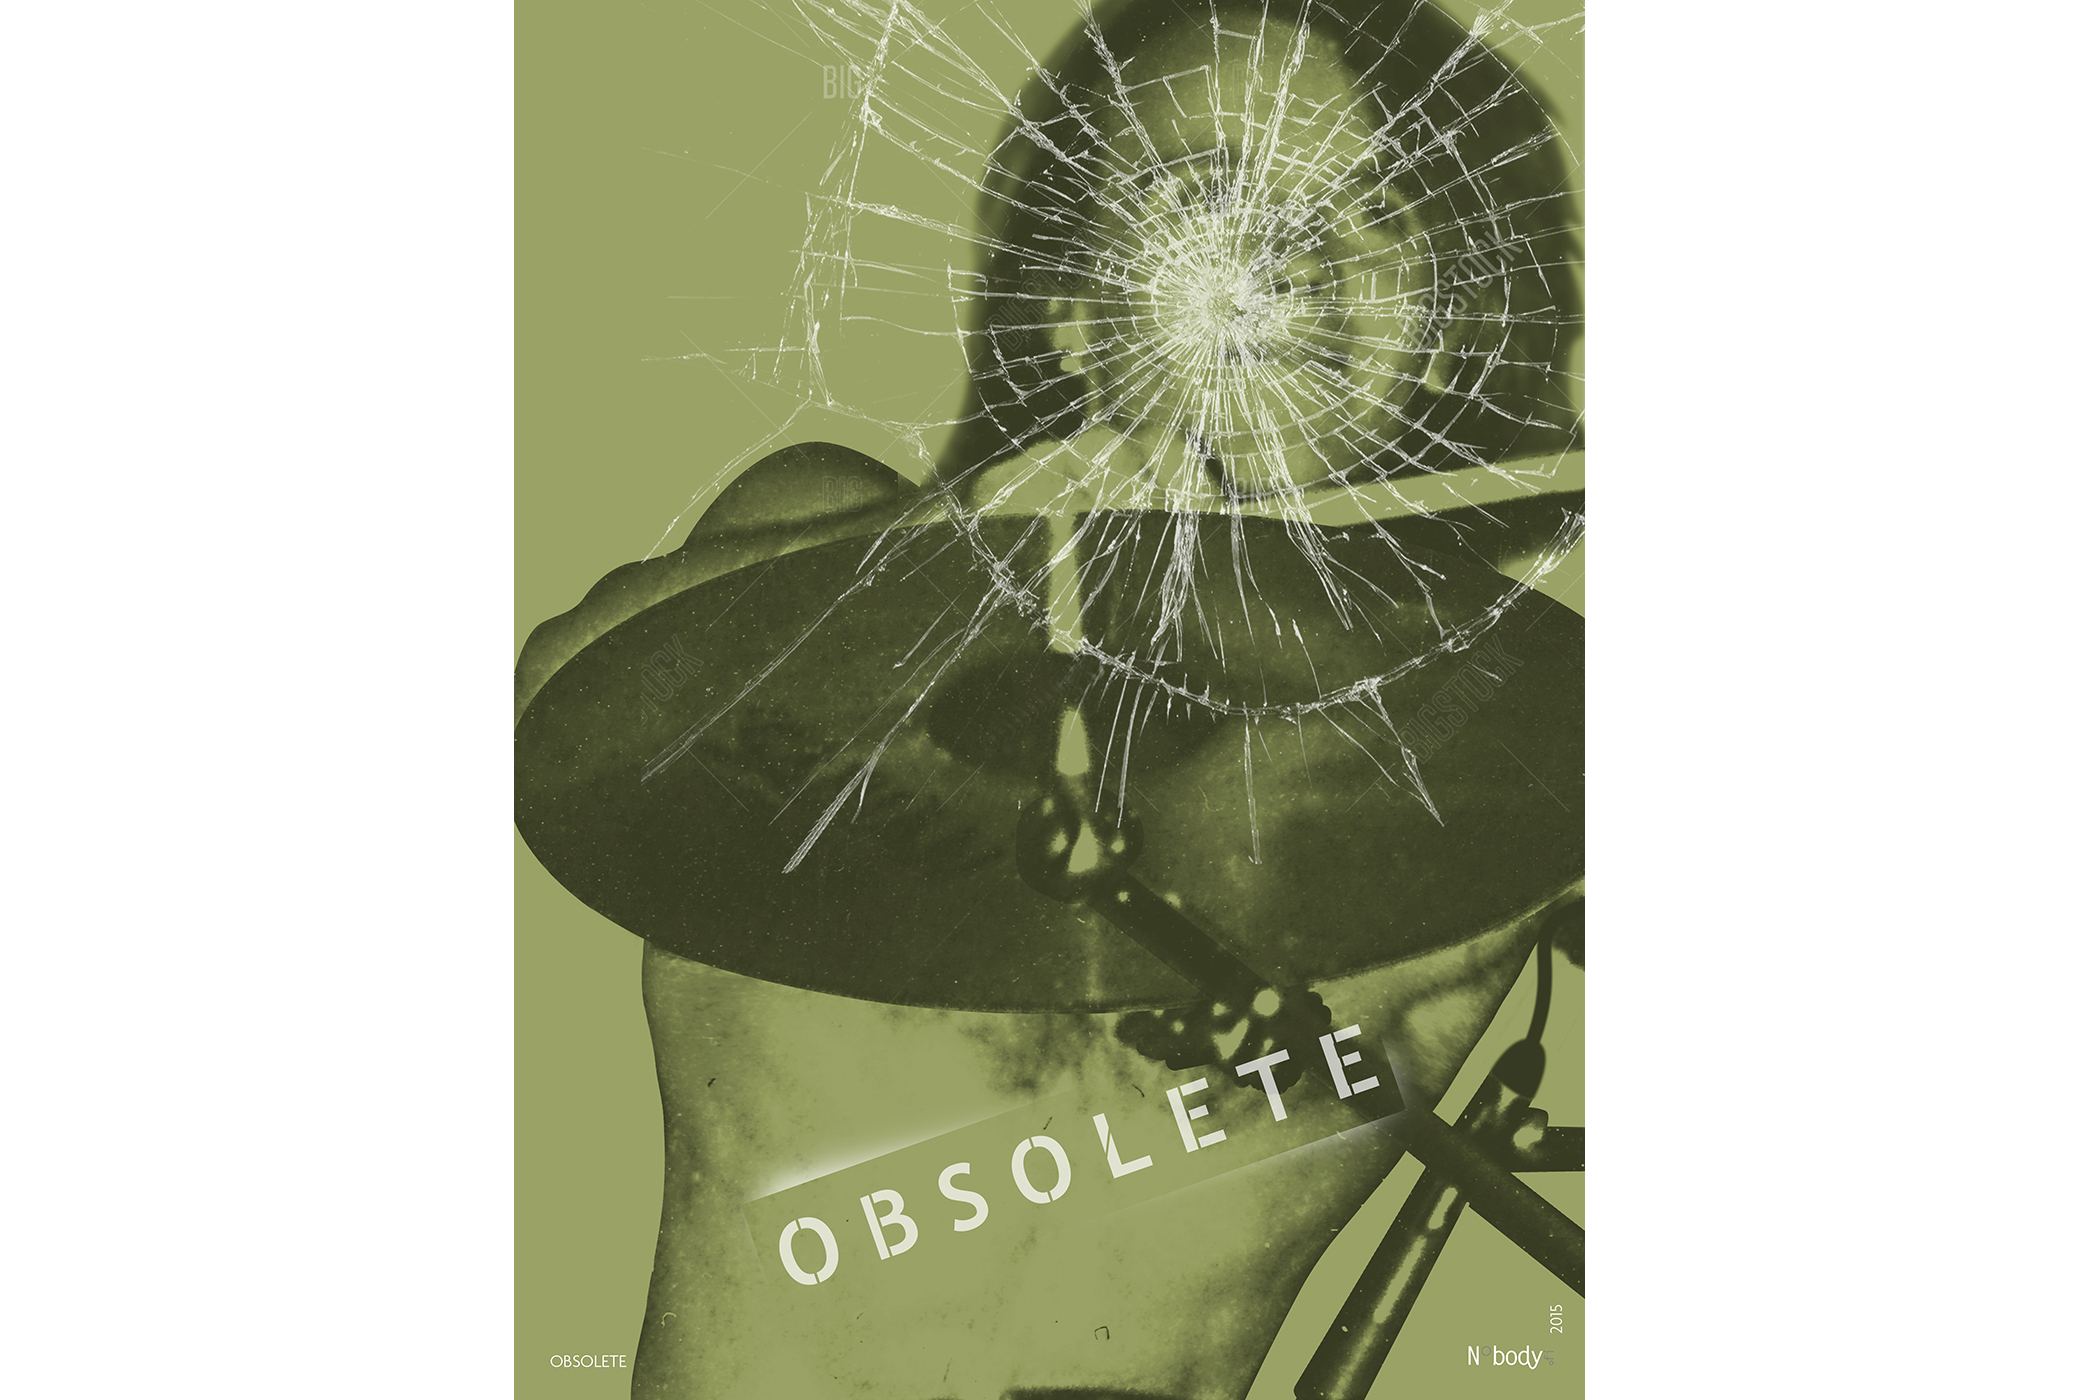 OBSOLETE  (2015)  Once my body was able and future was full of promises.